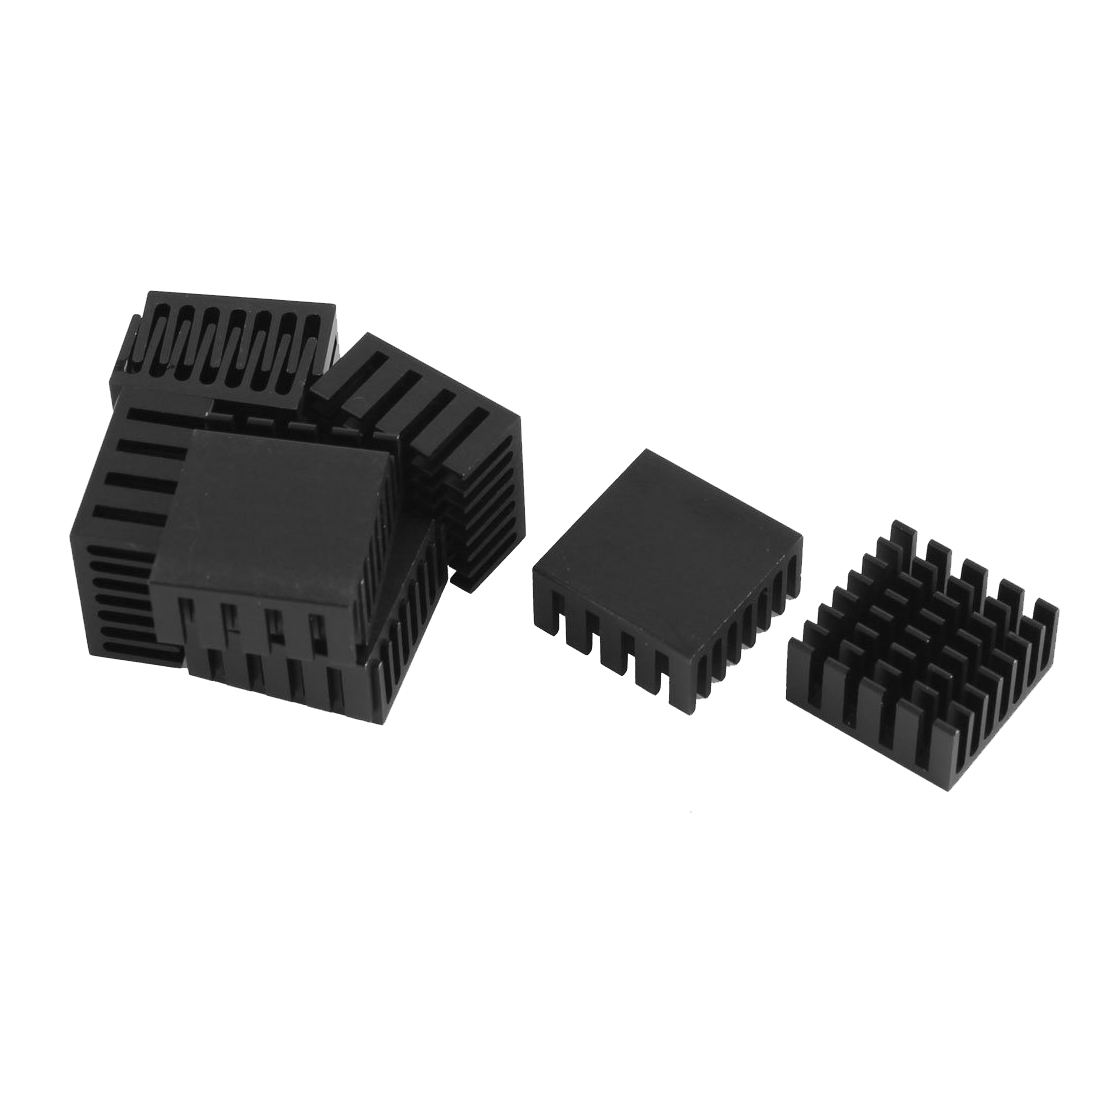 цены 10 Pcs Black Aluminum Cooler Radiator Heat Sink Heatsink 20mm x 20mm x 10mm